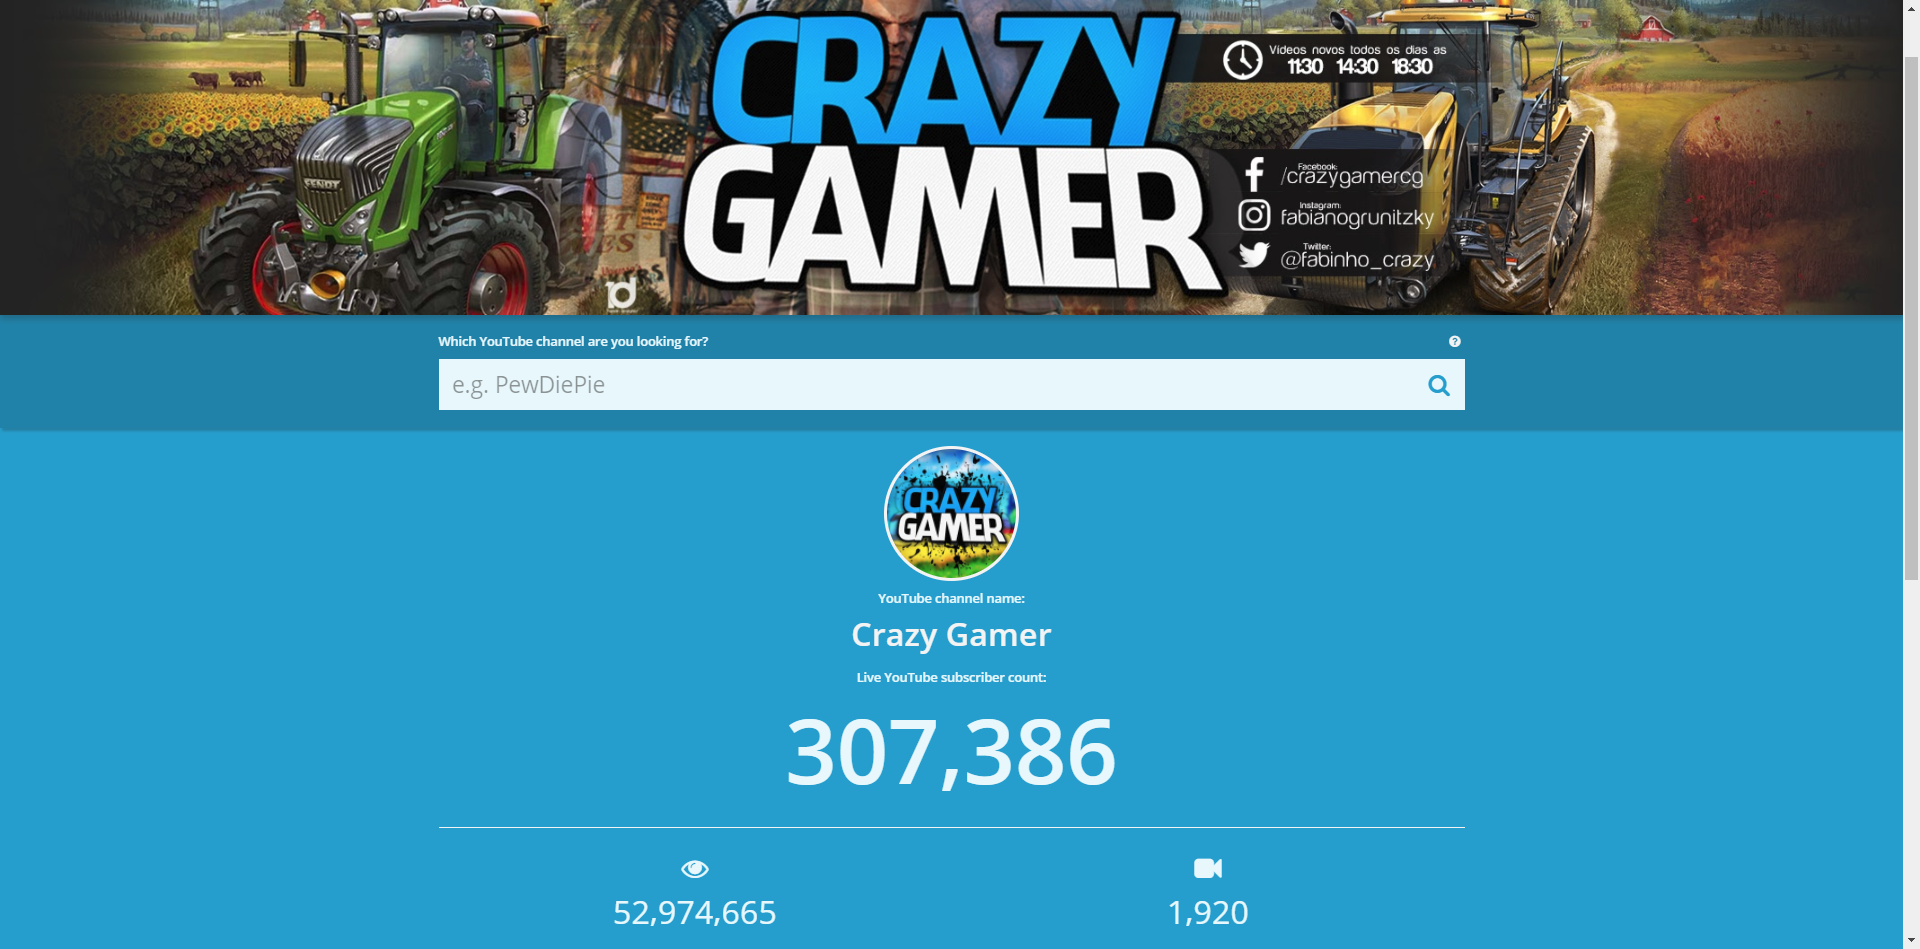 subscribercounter real-time subscriber counter for crazy gamer